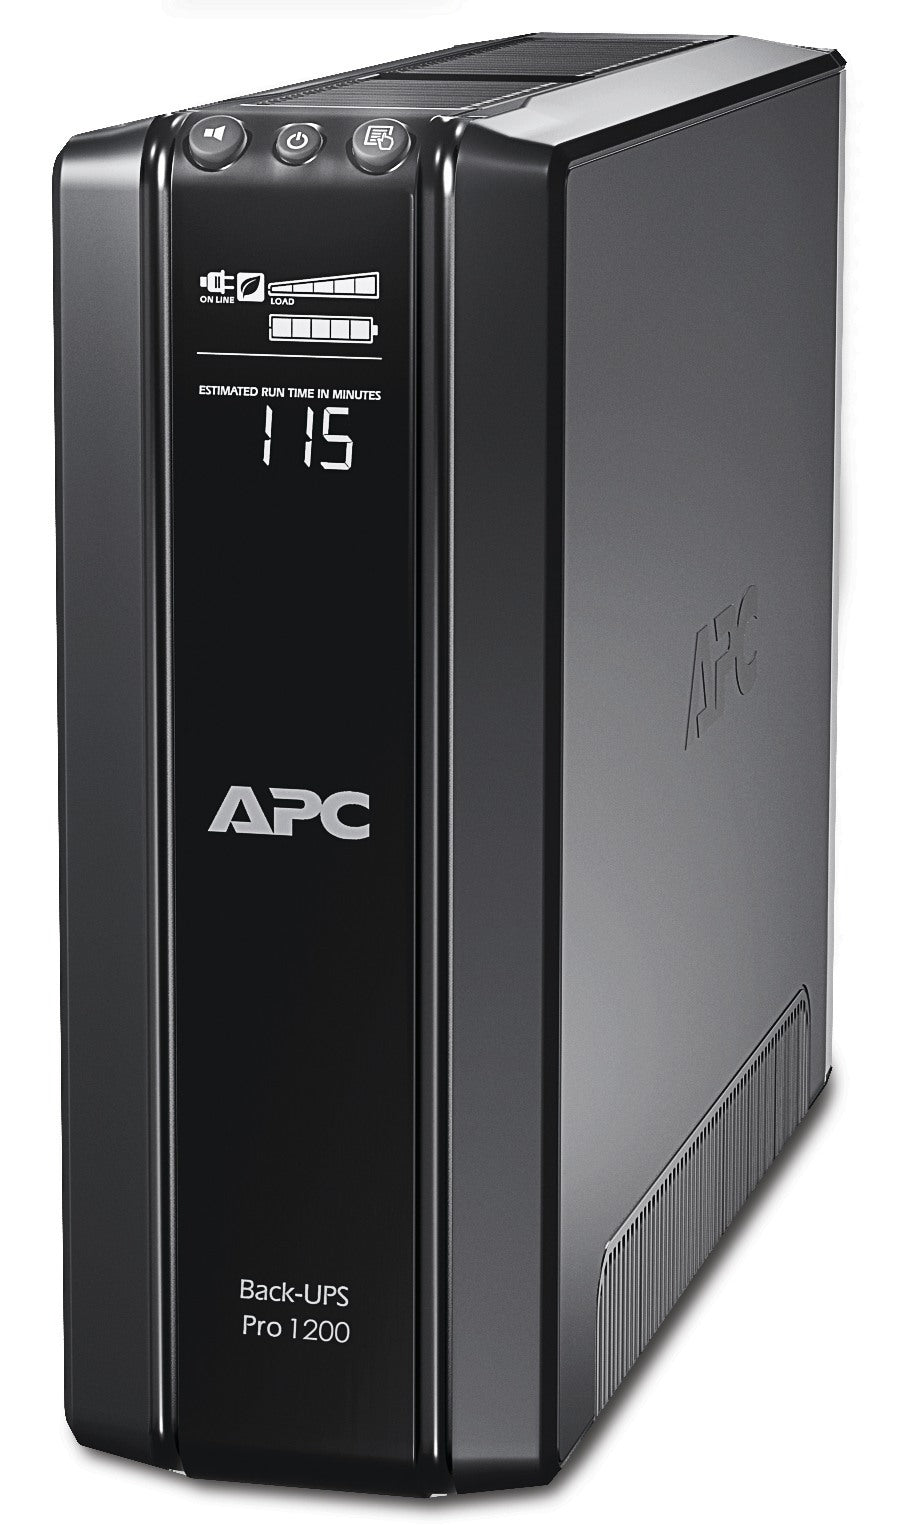 BR1200GI APC Power-Saving Back-UPS Pro 1200, 230V